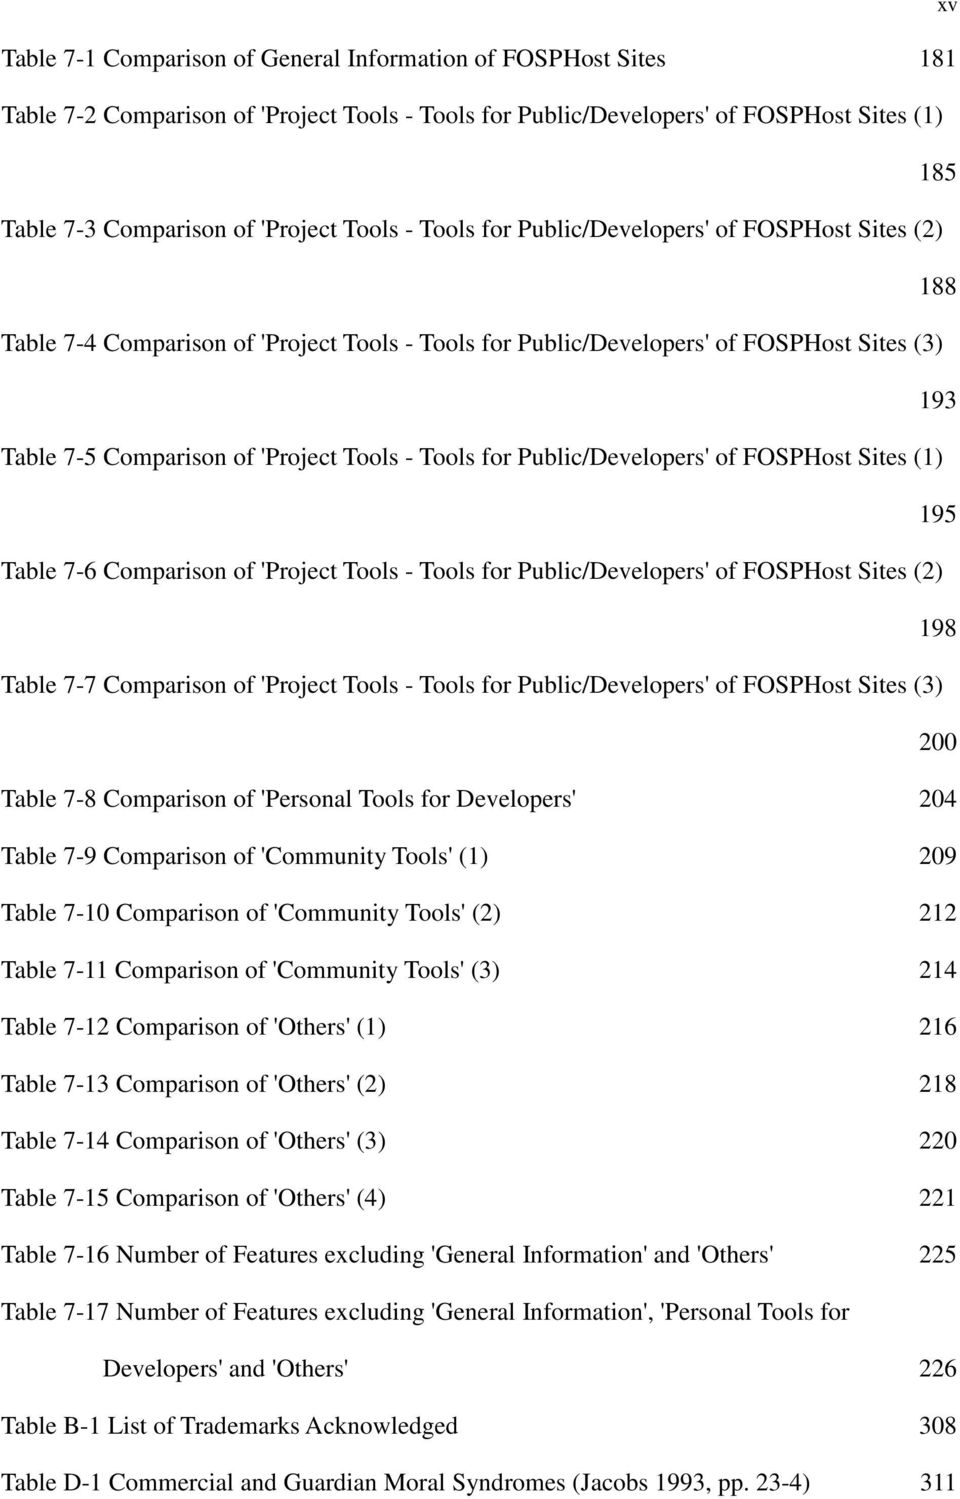 Tools for Public/Developers' of FOSPHost Sites (1) 195 Table 7-6 Comparison of 'Project Tools - Tools for Public/Developers' of FOSPHost Sites (2) 198 Table 7-7 Comparison of 'Project Tools - Tools